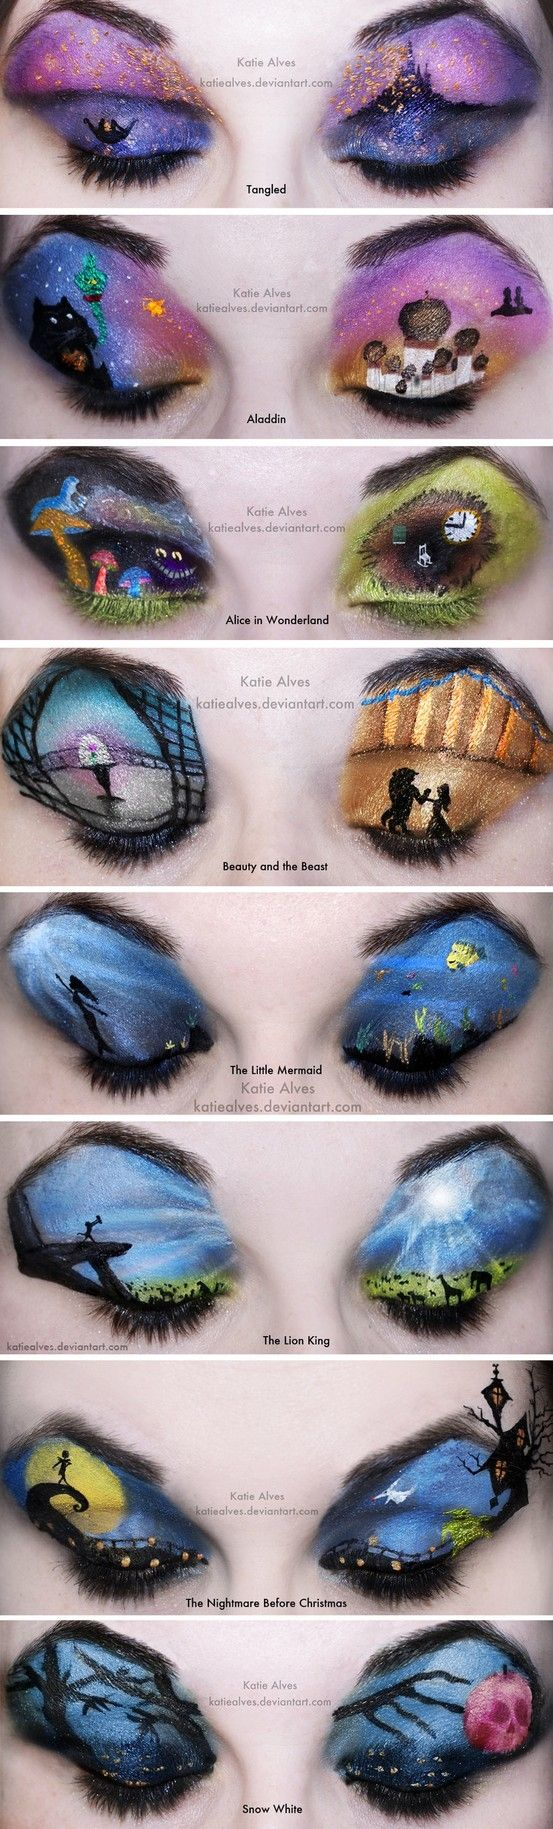 Disney Make-up Collectio by TinyCarmen